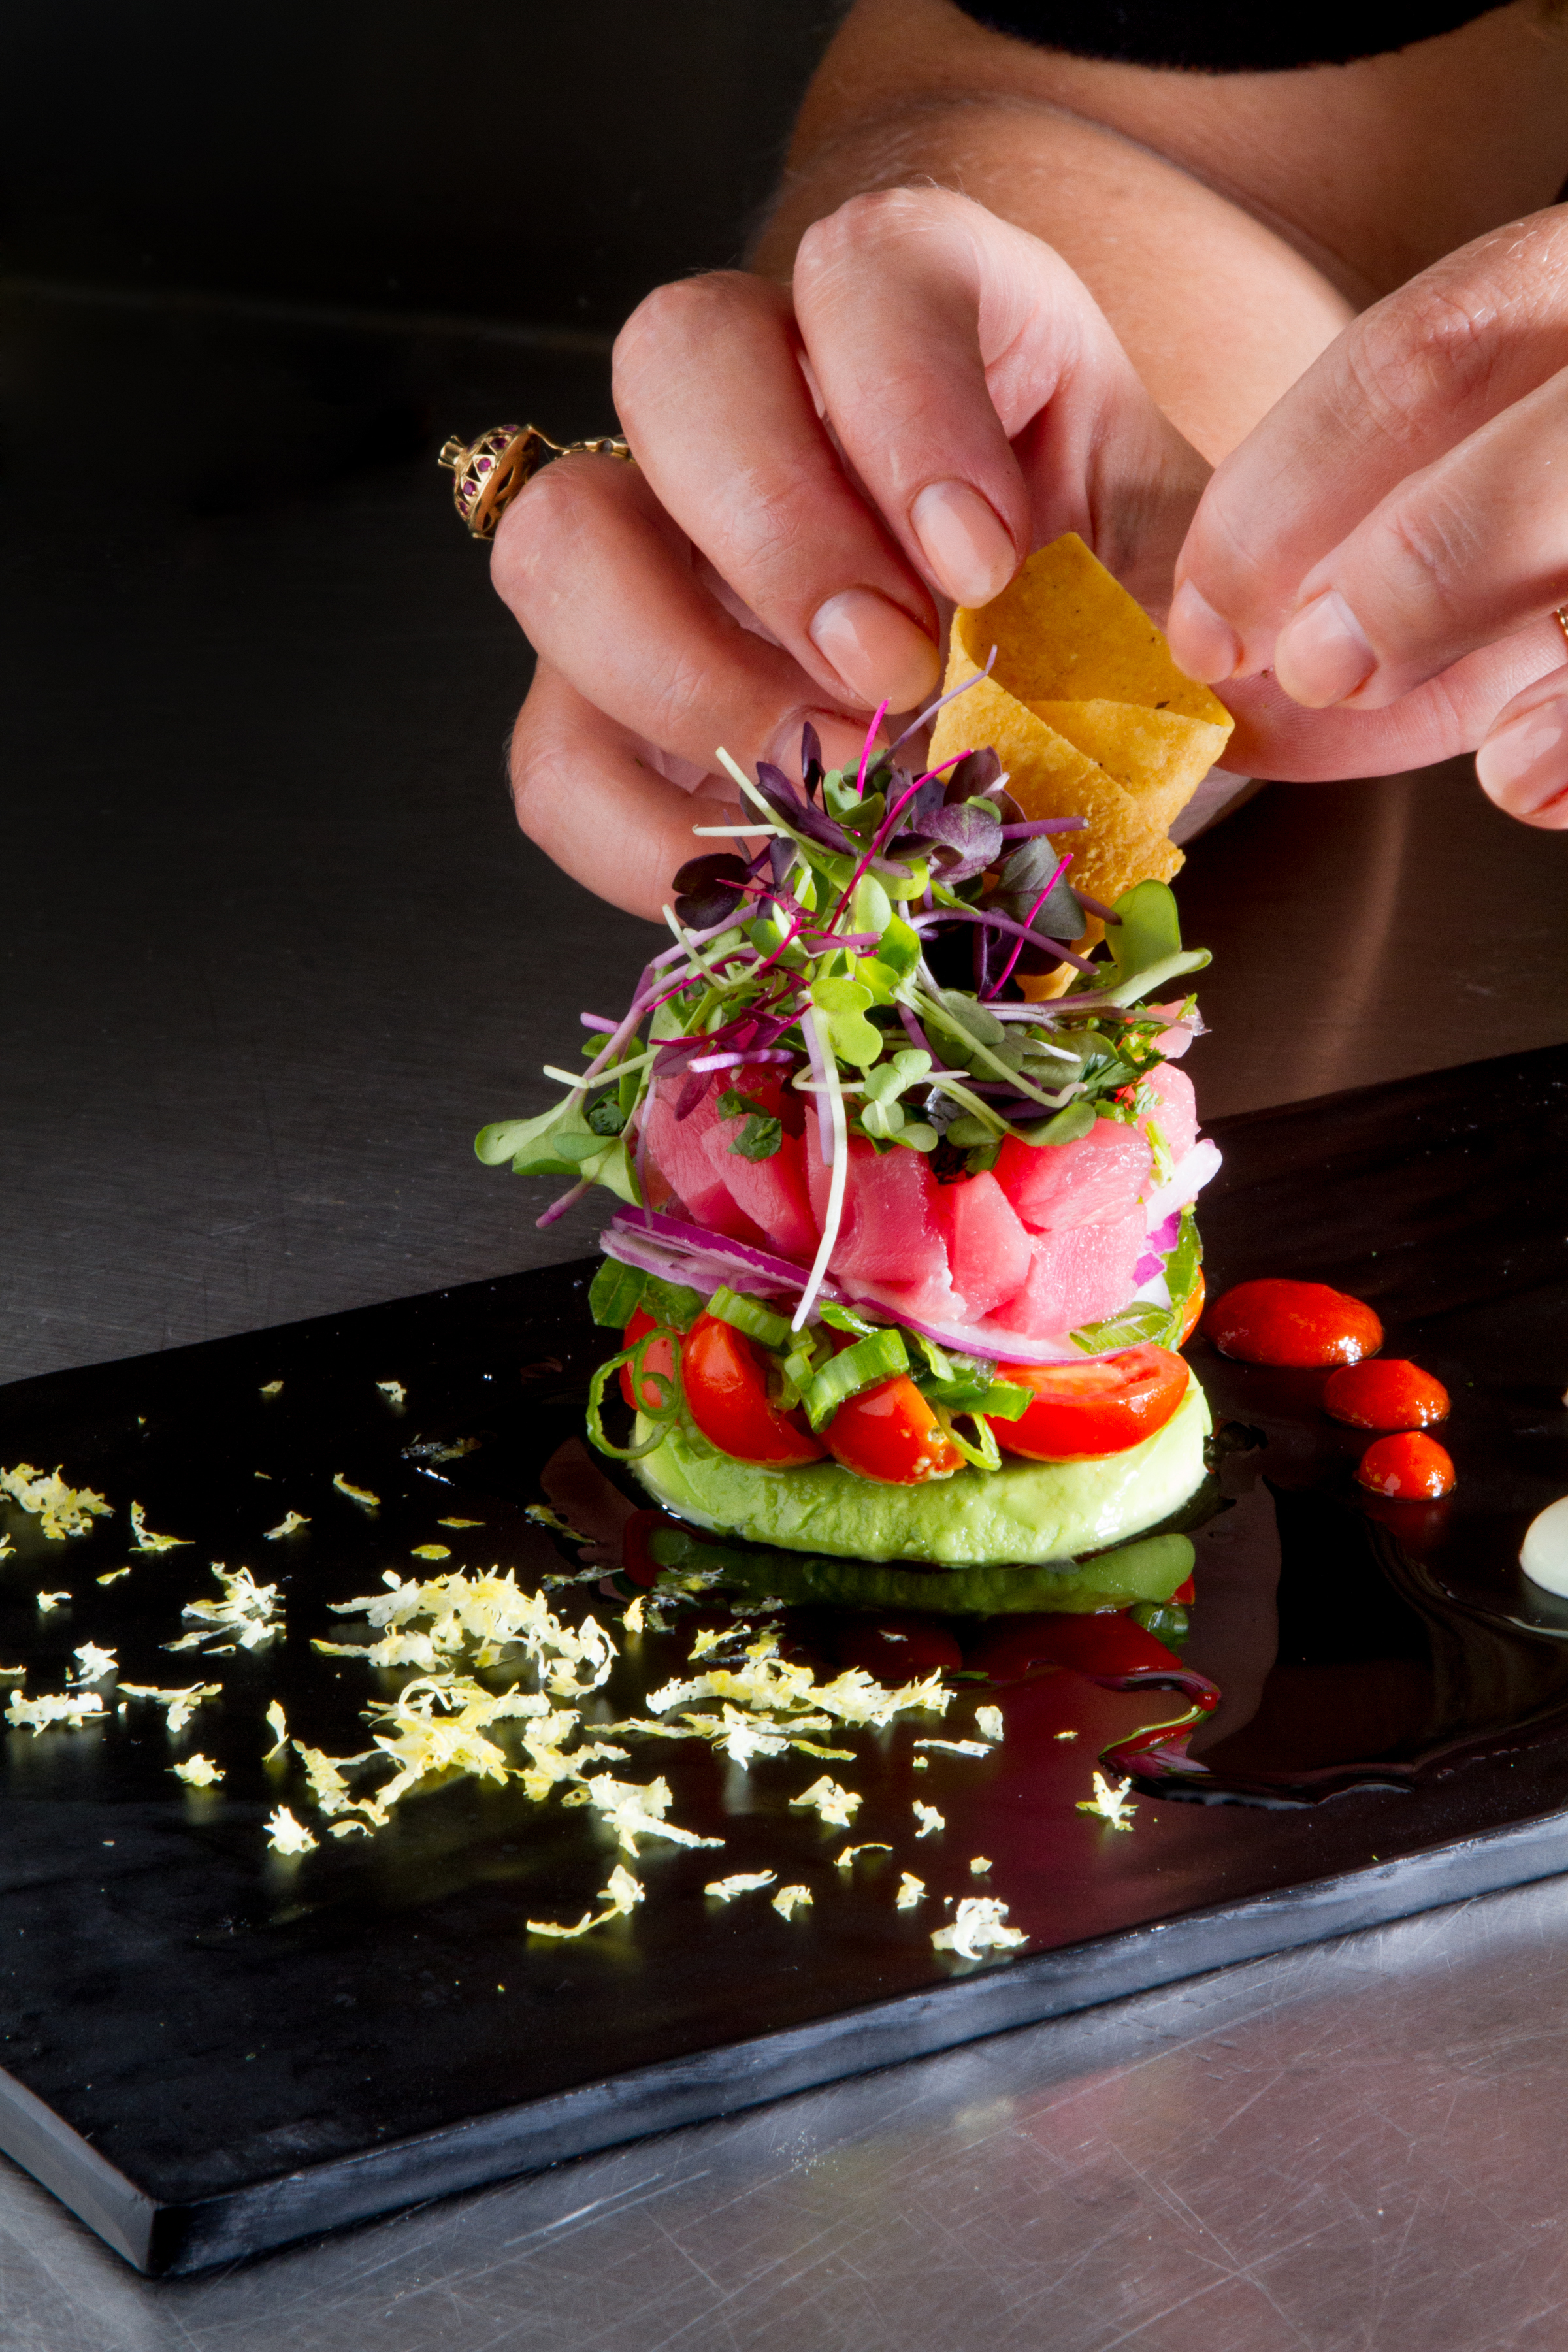 Tuna avacado stack by Pigeon Caterers. Photo: Jessica The Photographer